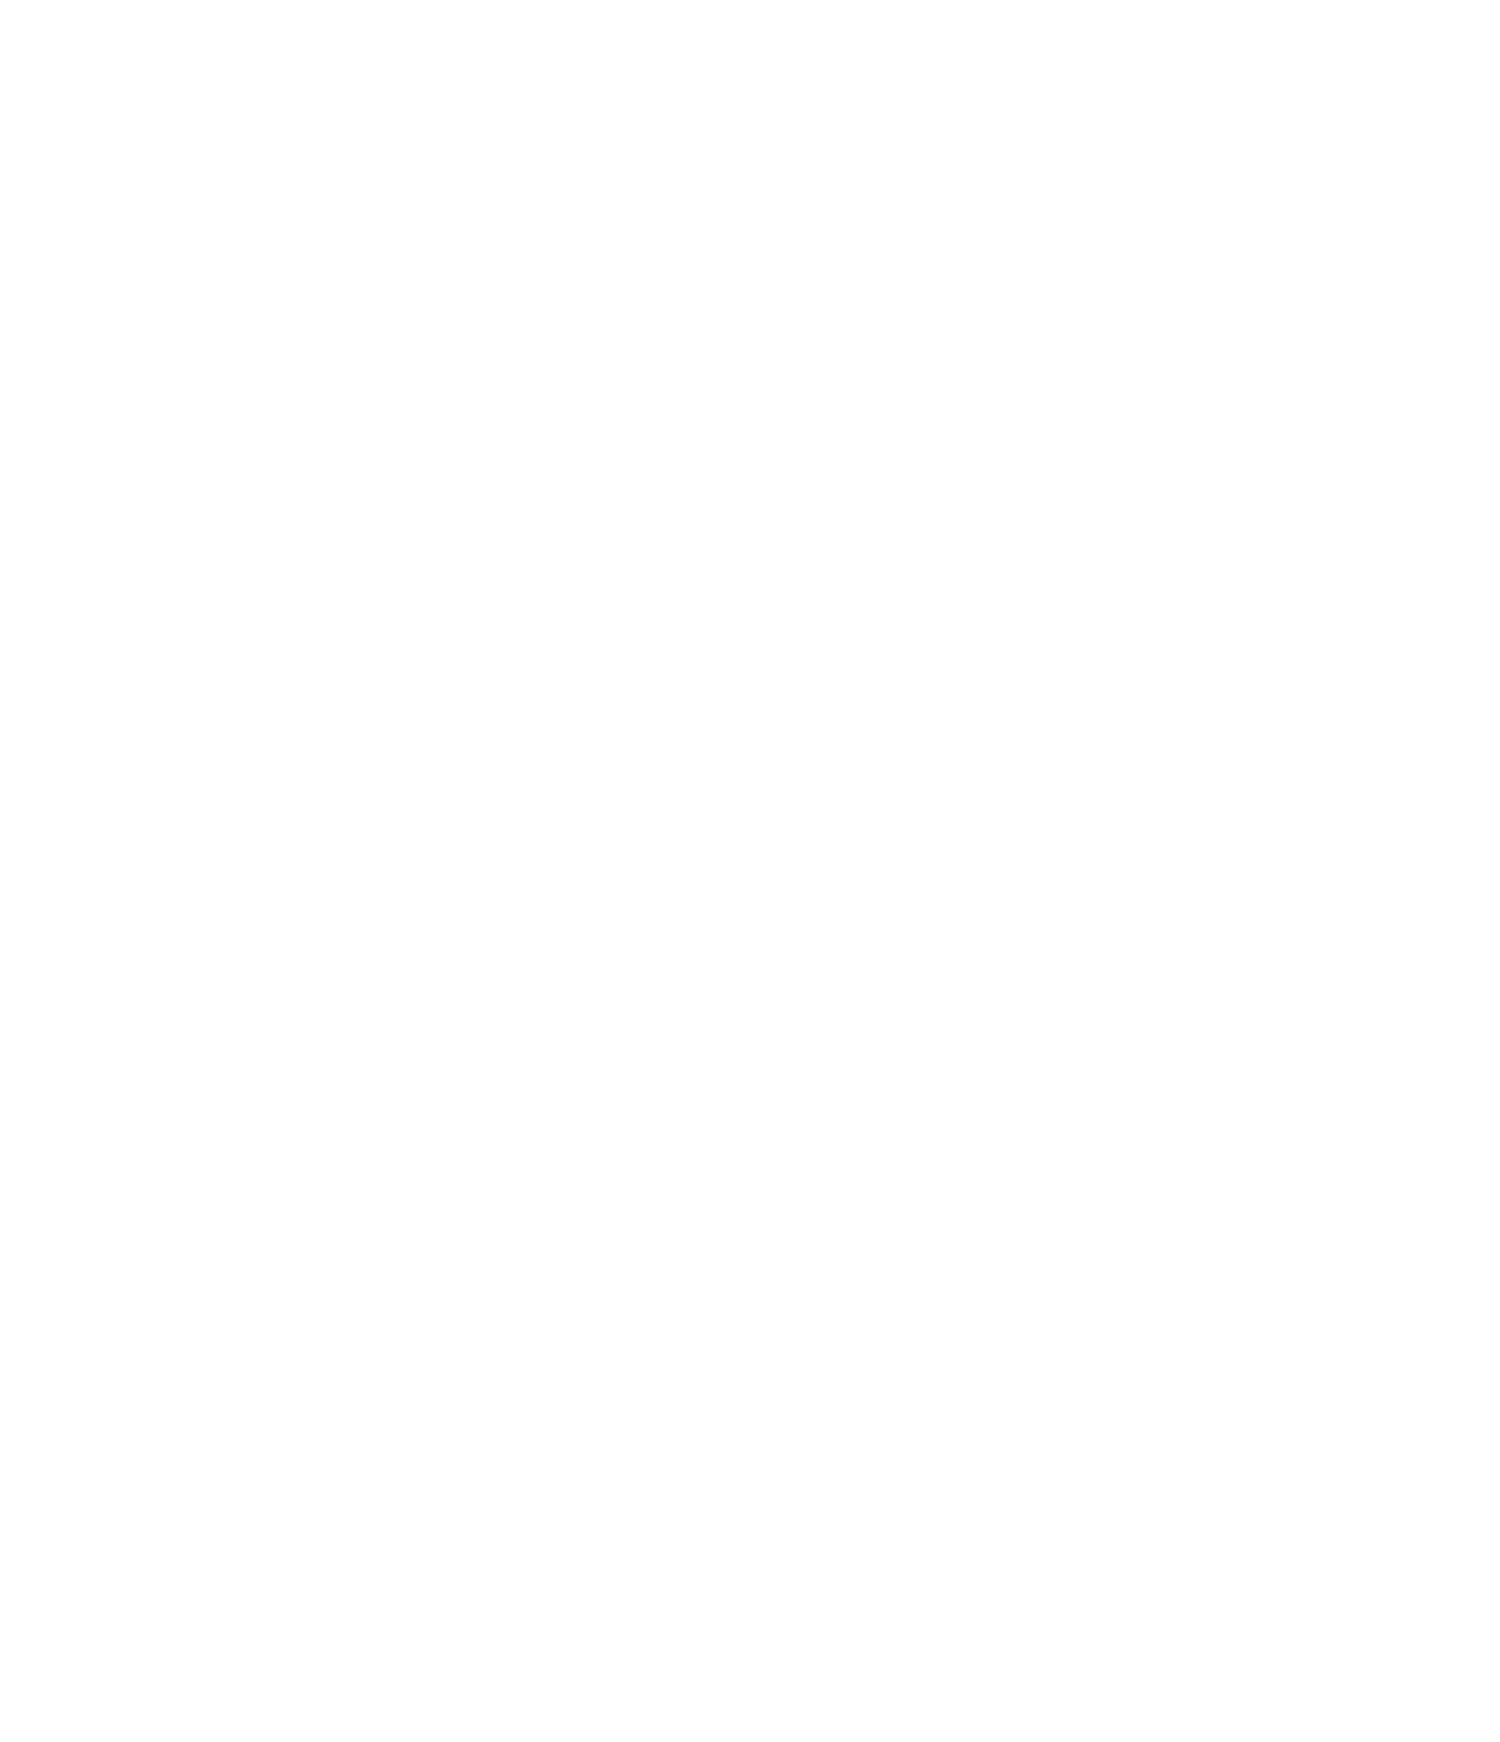 Sustaingineering